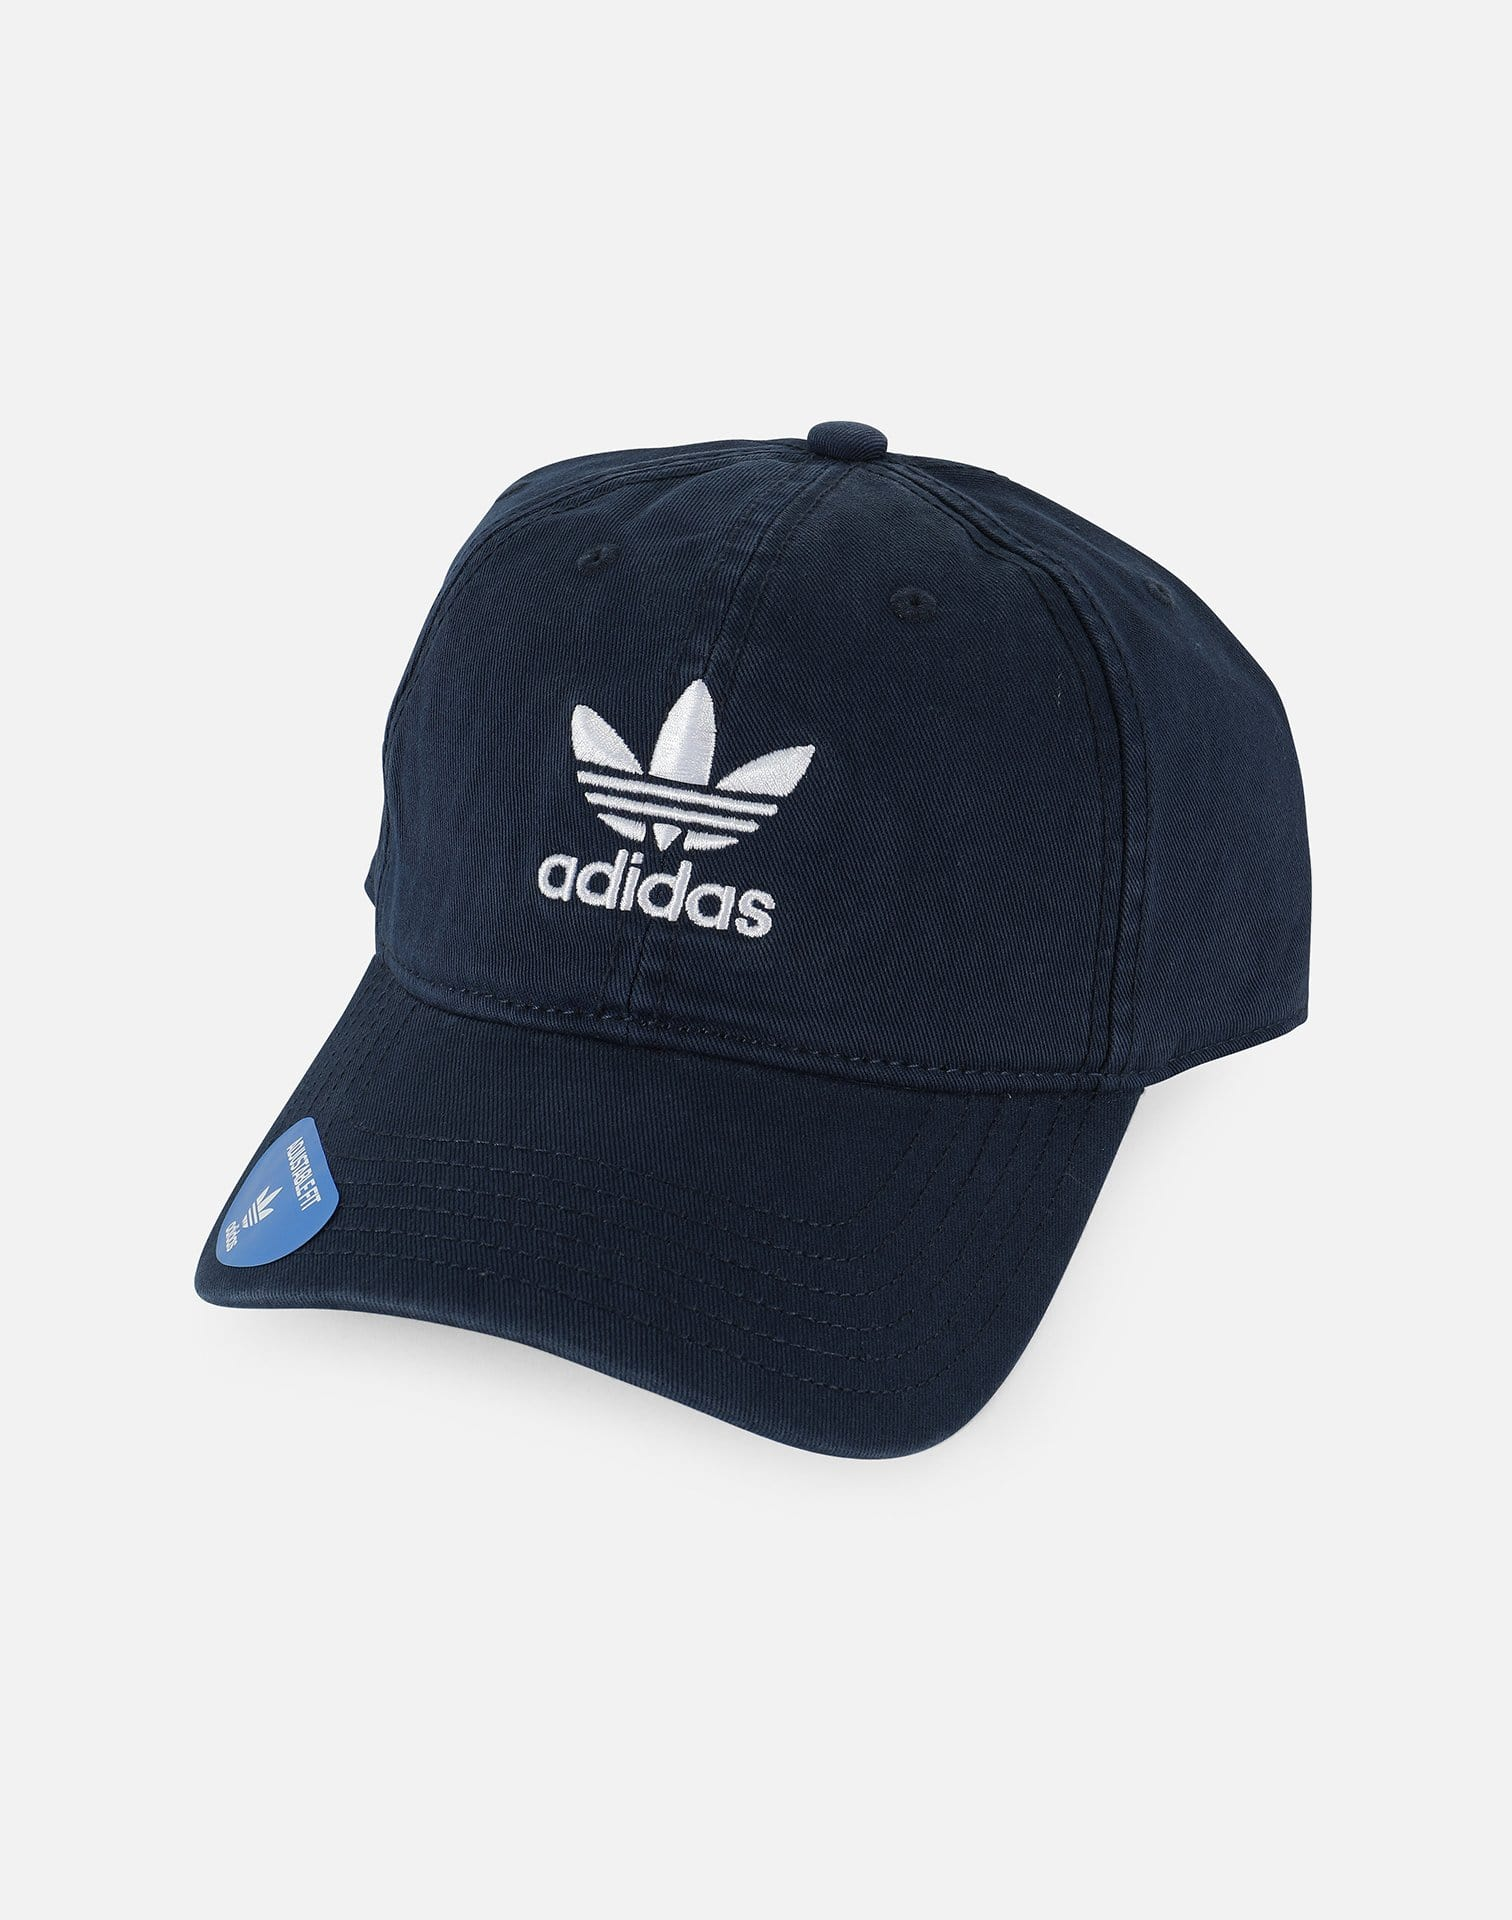 adidas Originals Precurved Washed Strapback Hat